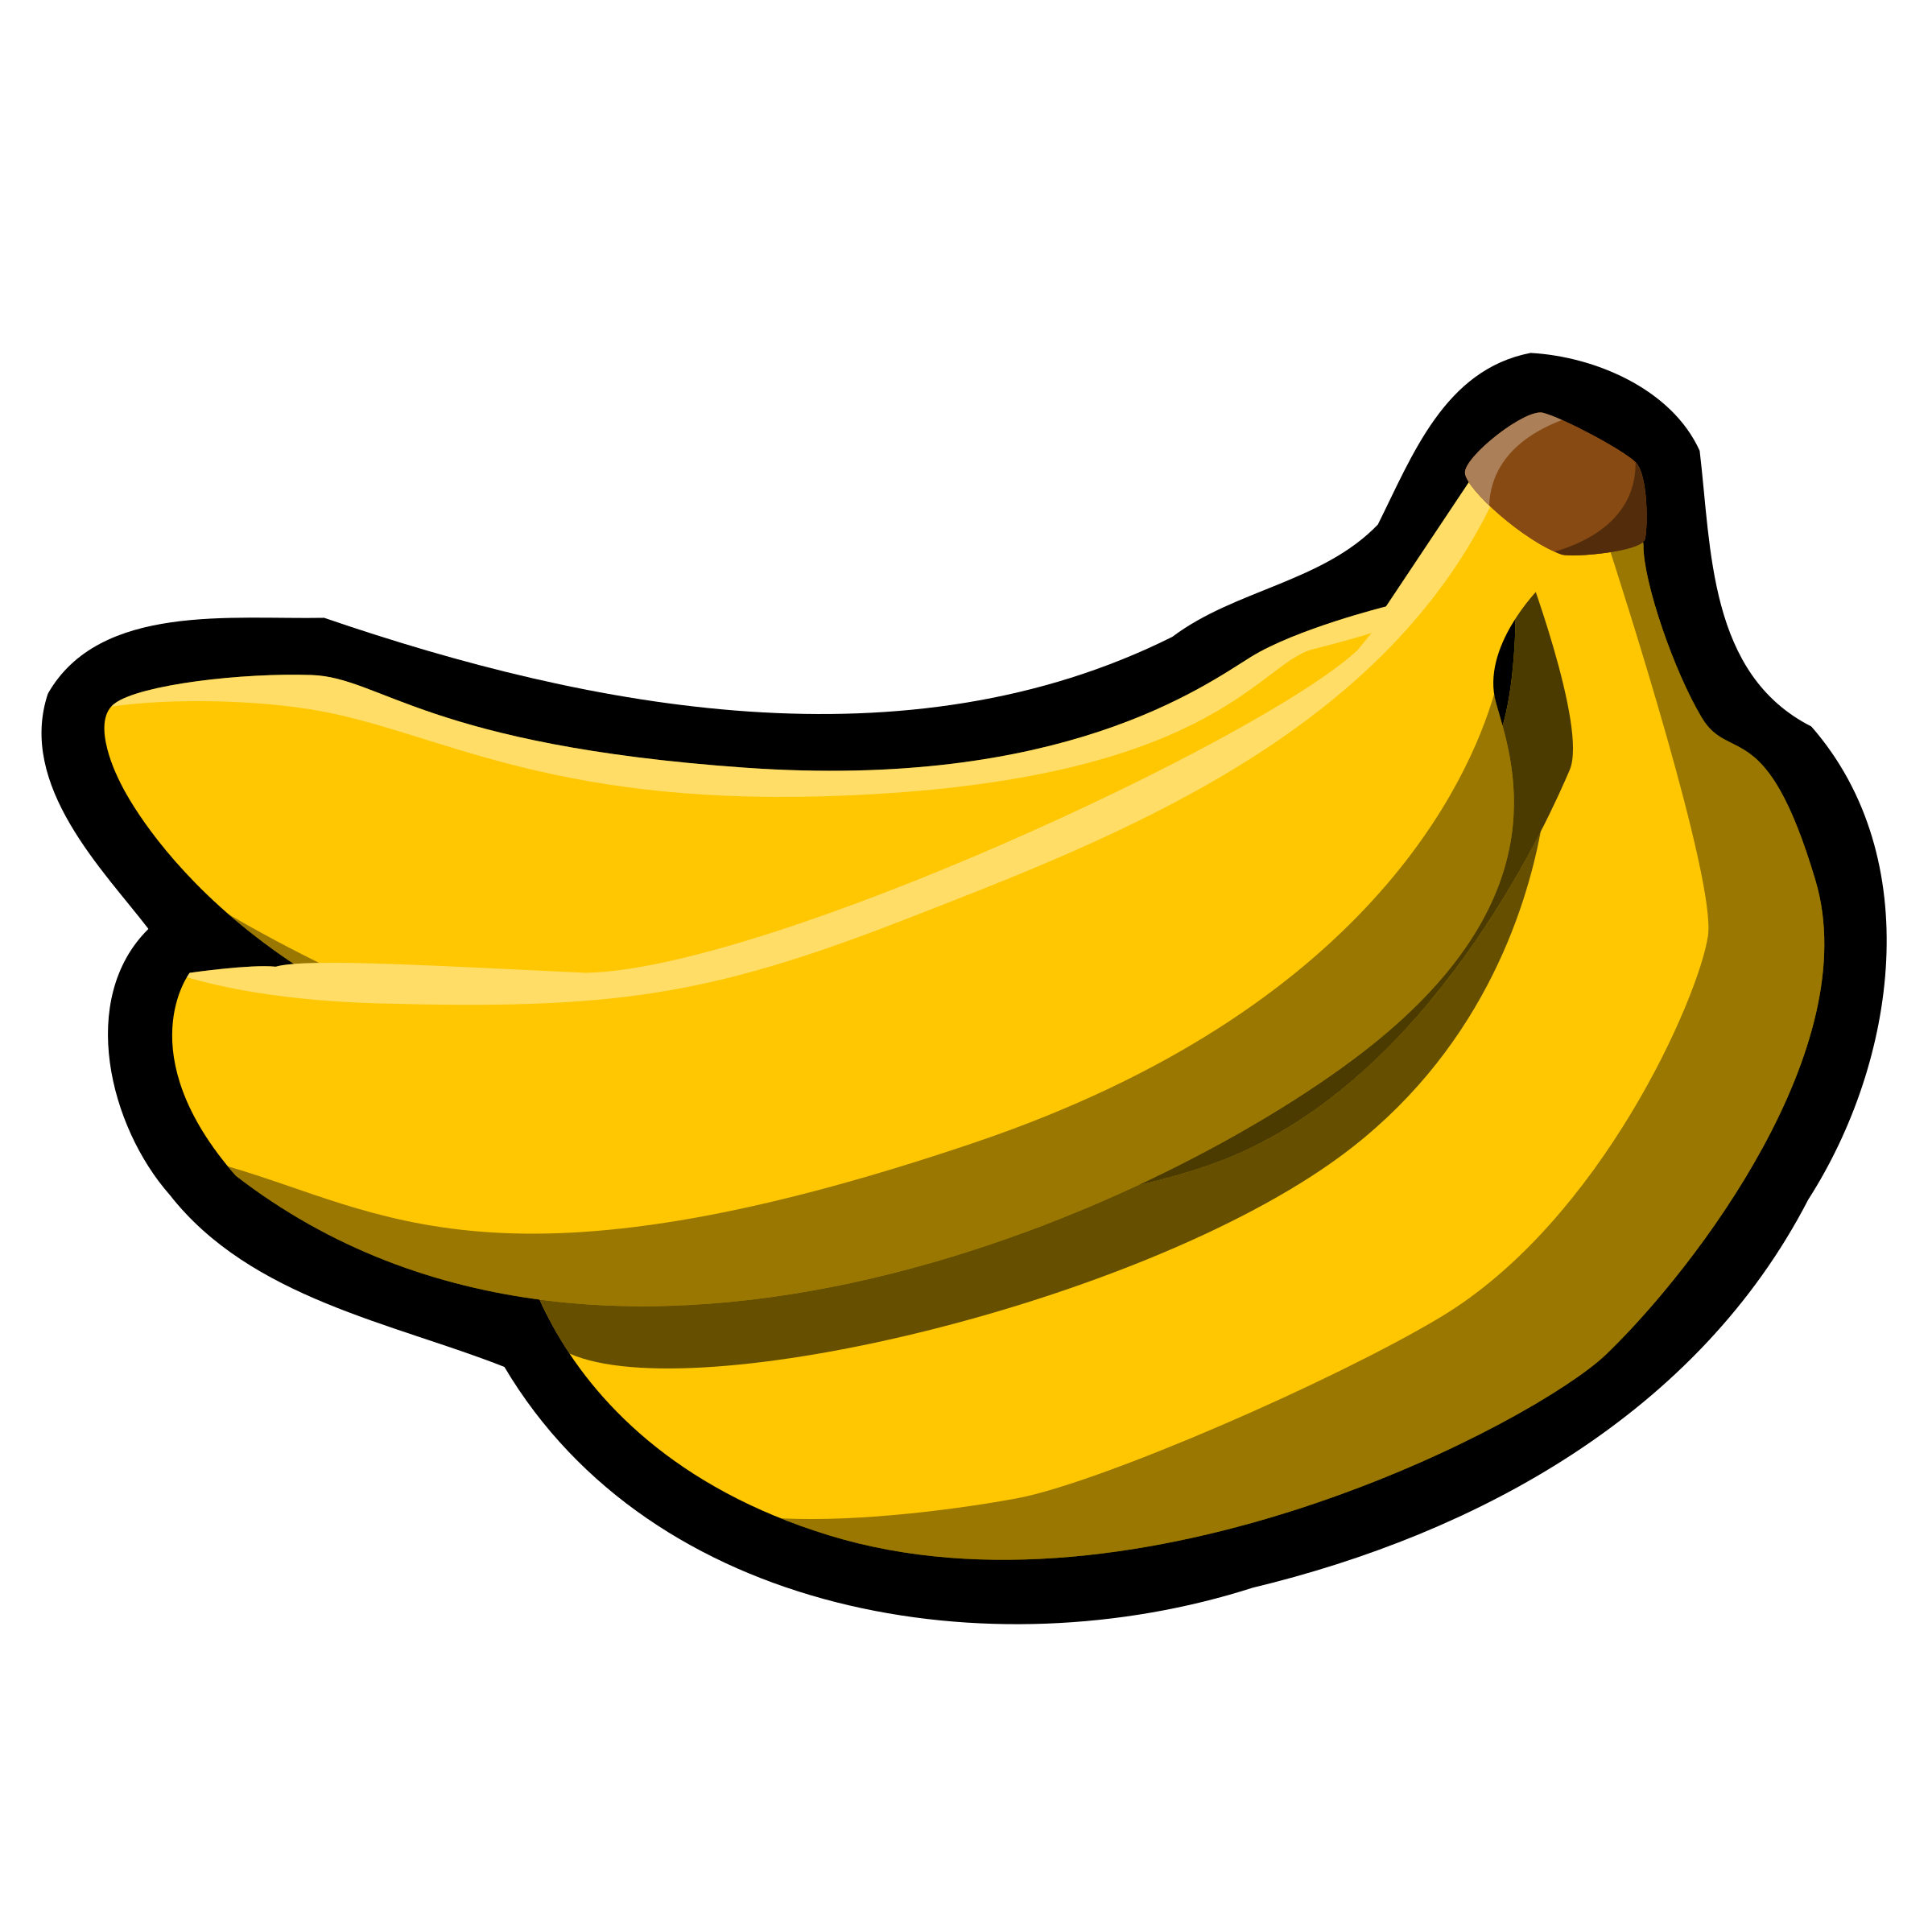 Bananas icon by pitr